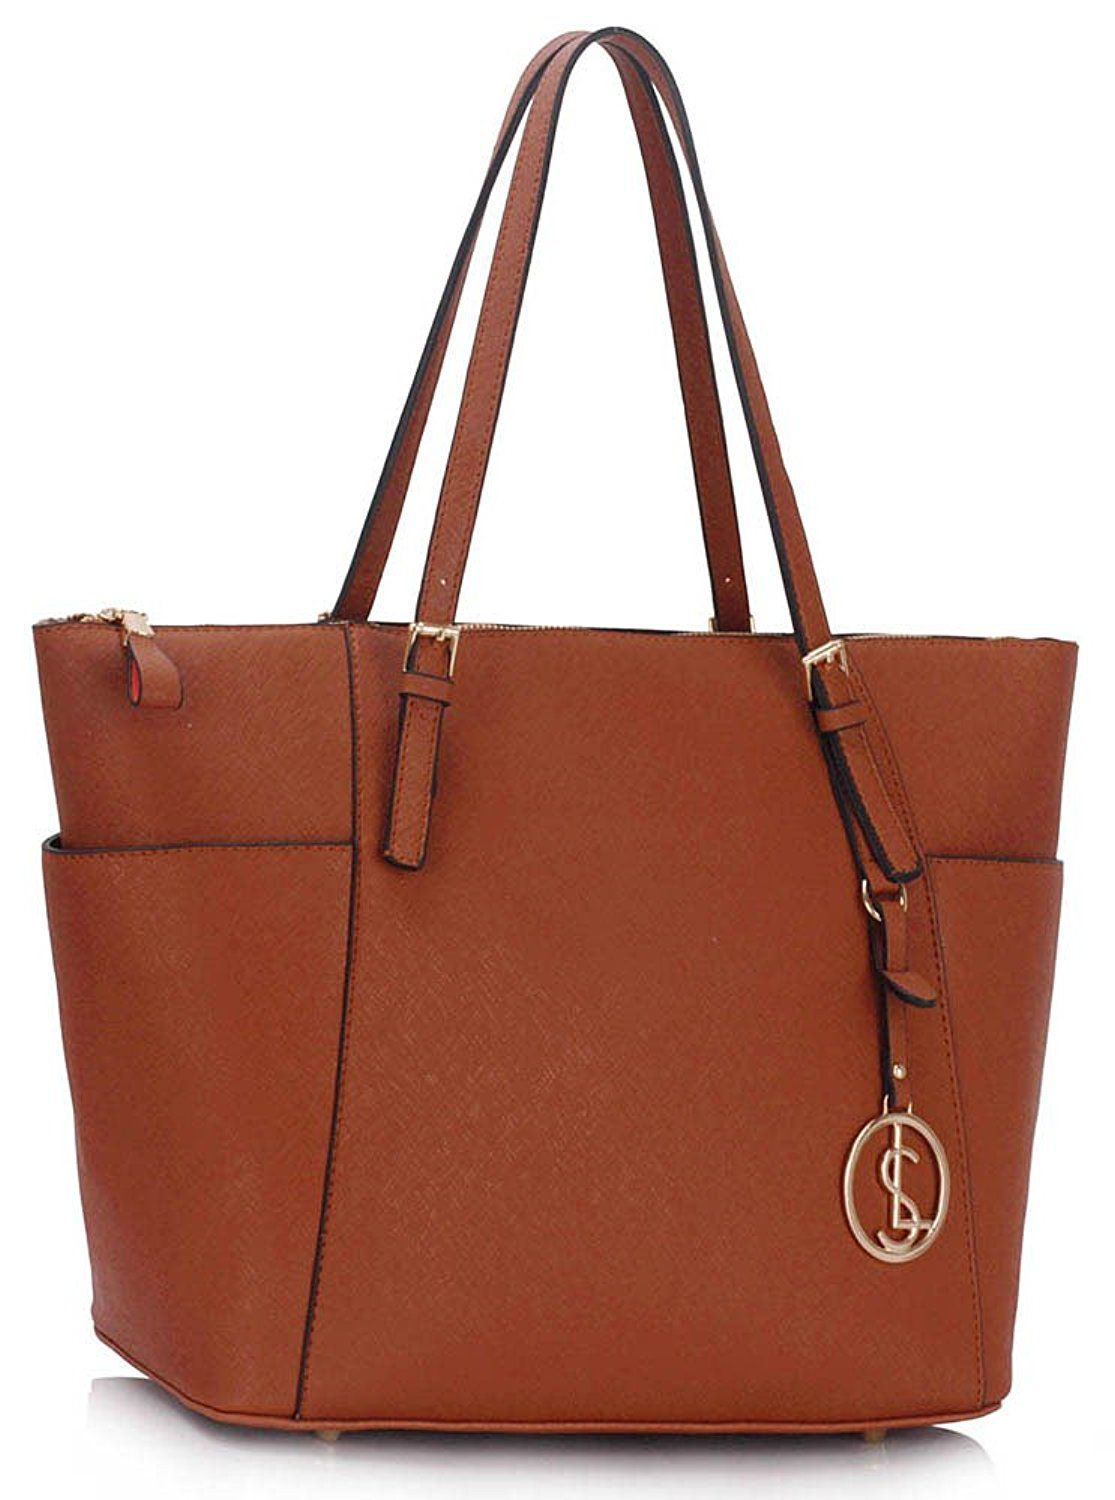 Womens Tote Handbags Las Large Bag Designer Faux Leather Celebrity Style New